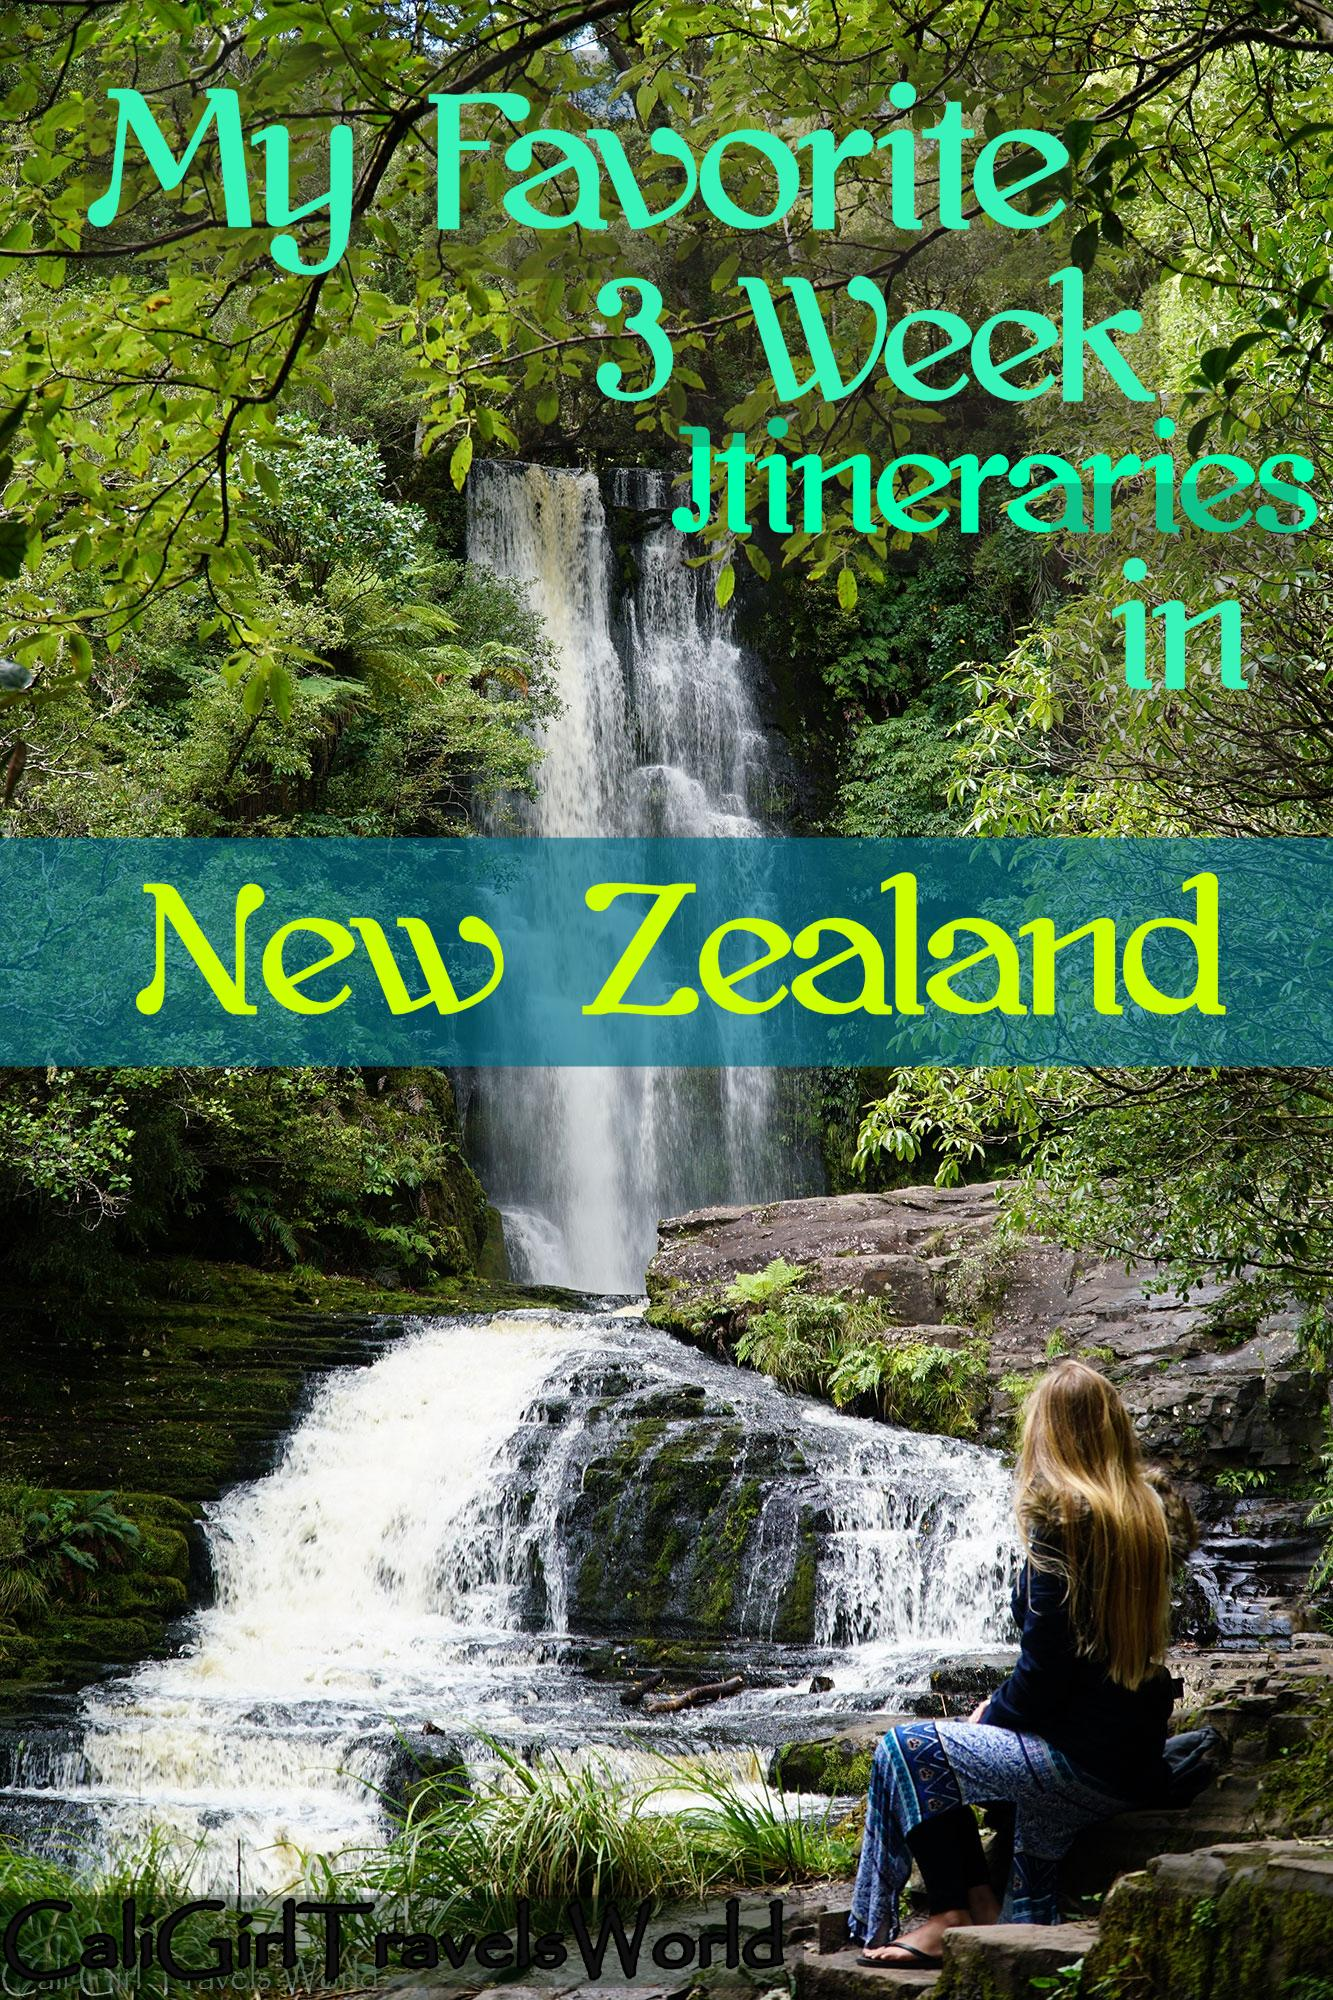 Pin My favorite 3 week itineraries in New Zealand